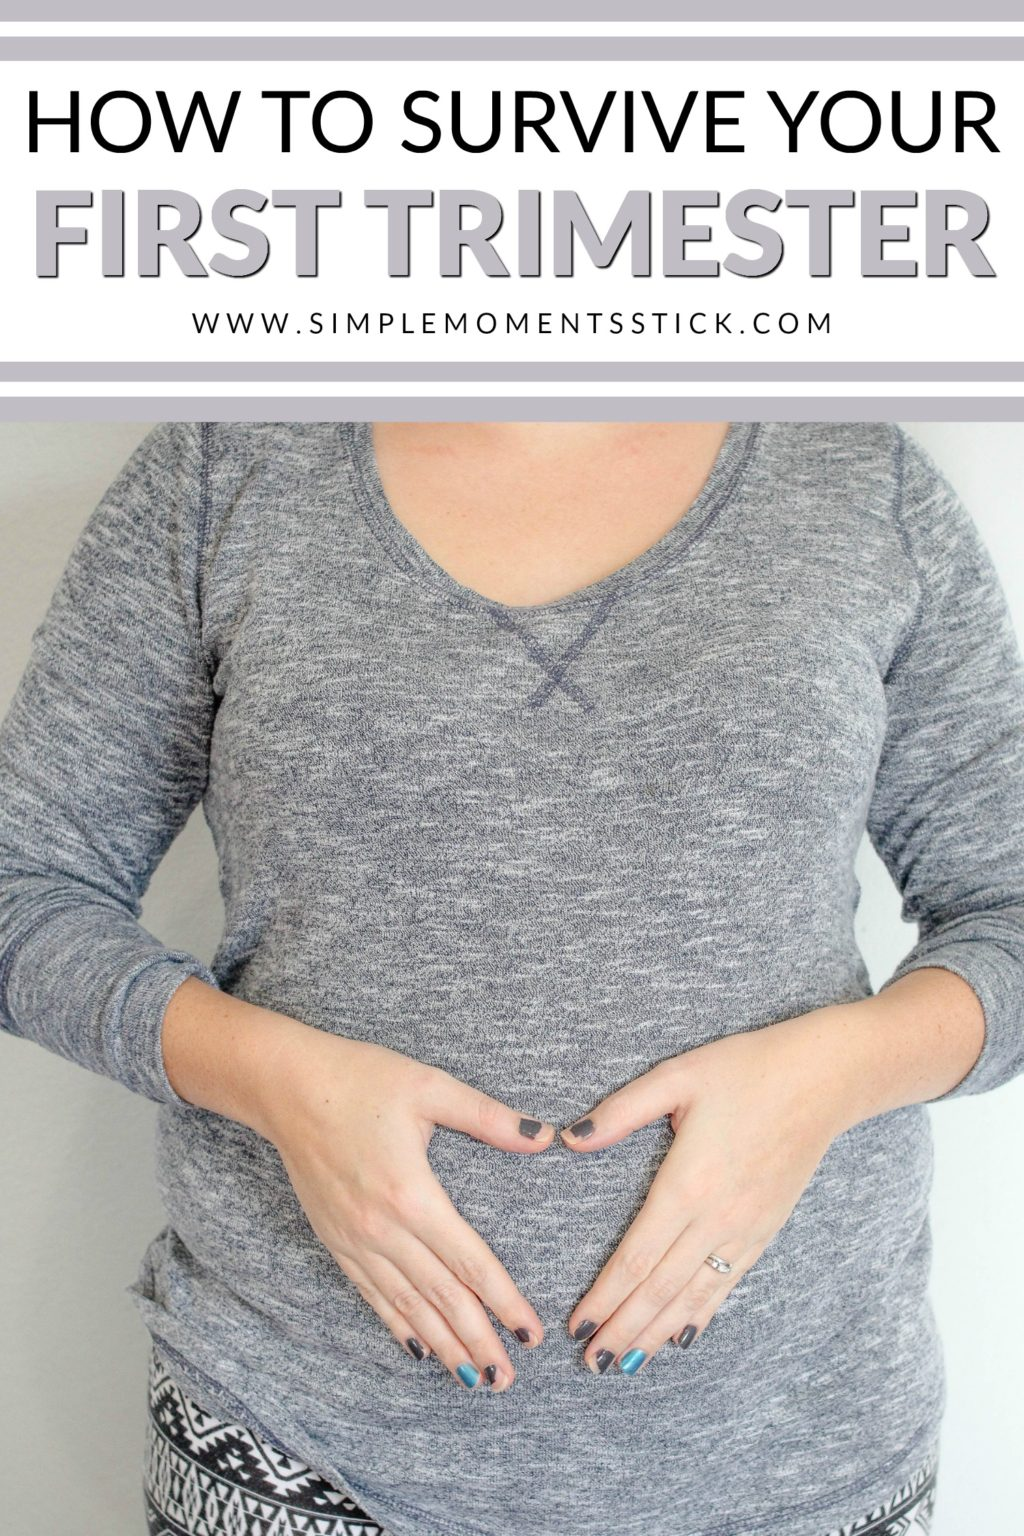 How to survive your first trimester